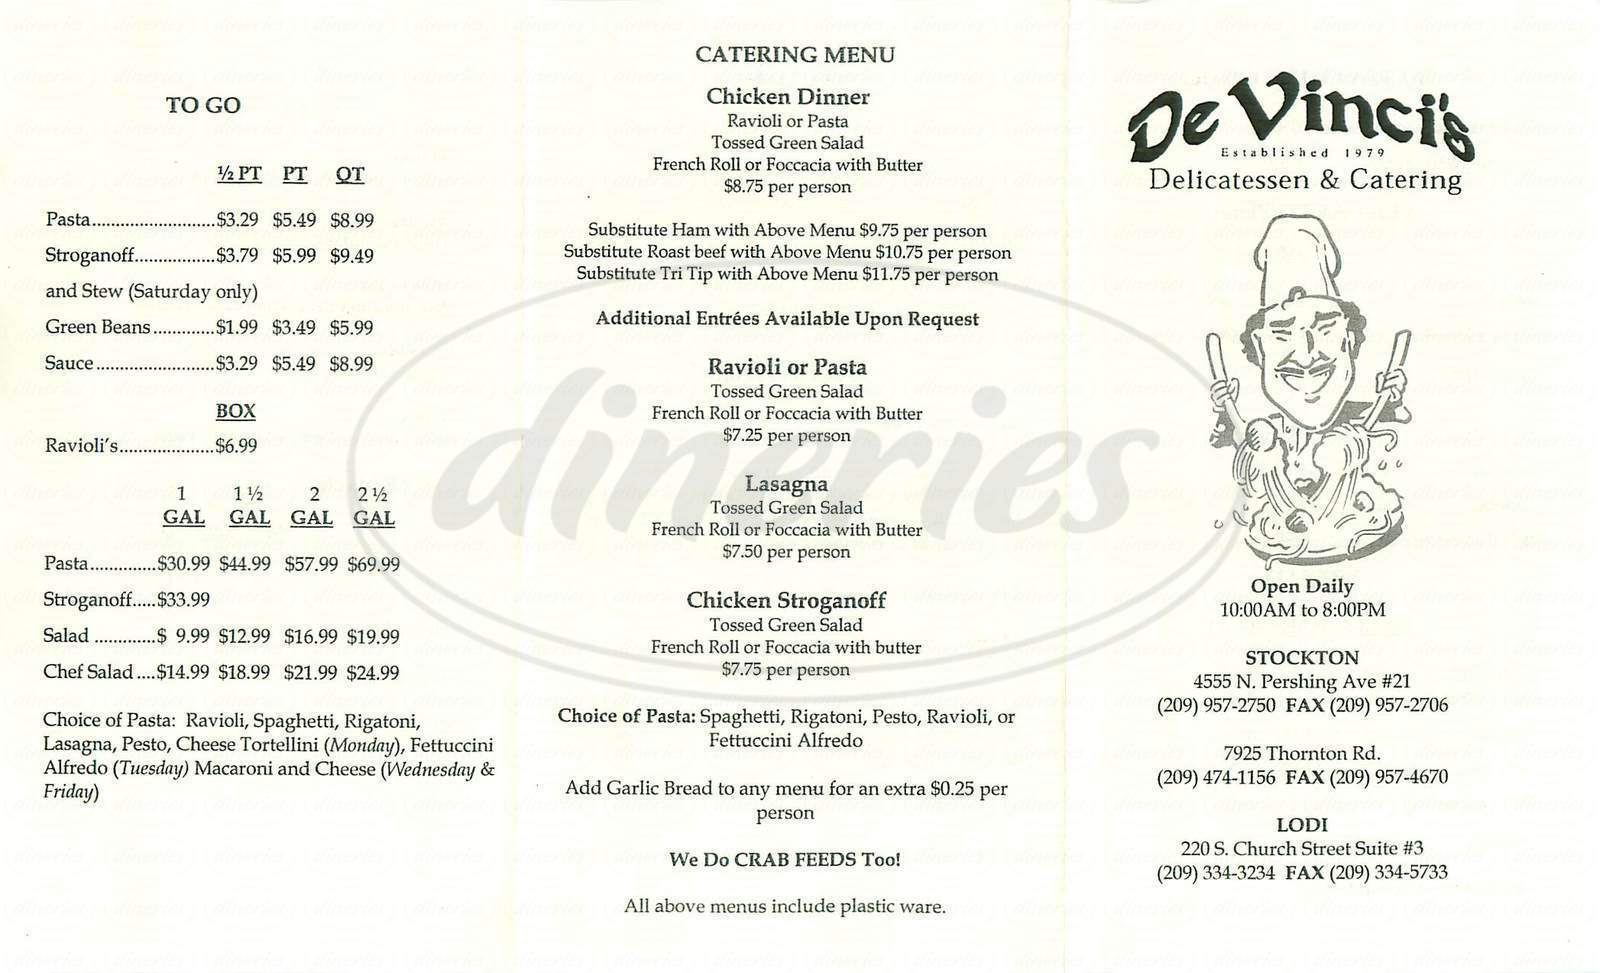 menu for De Vincis Delicatessen & Catering